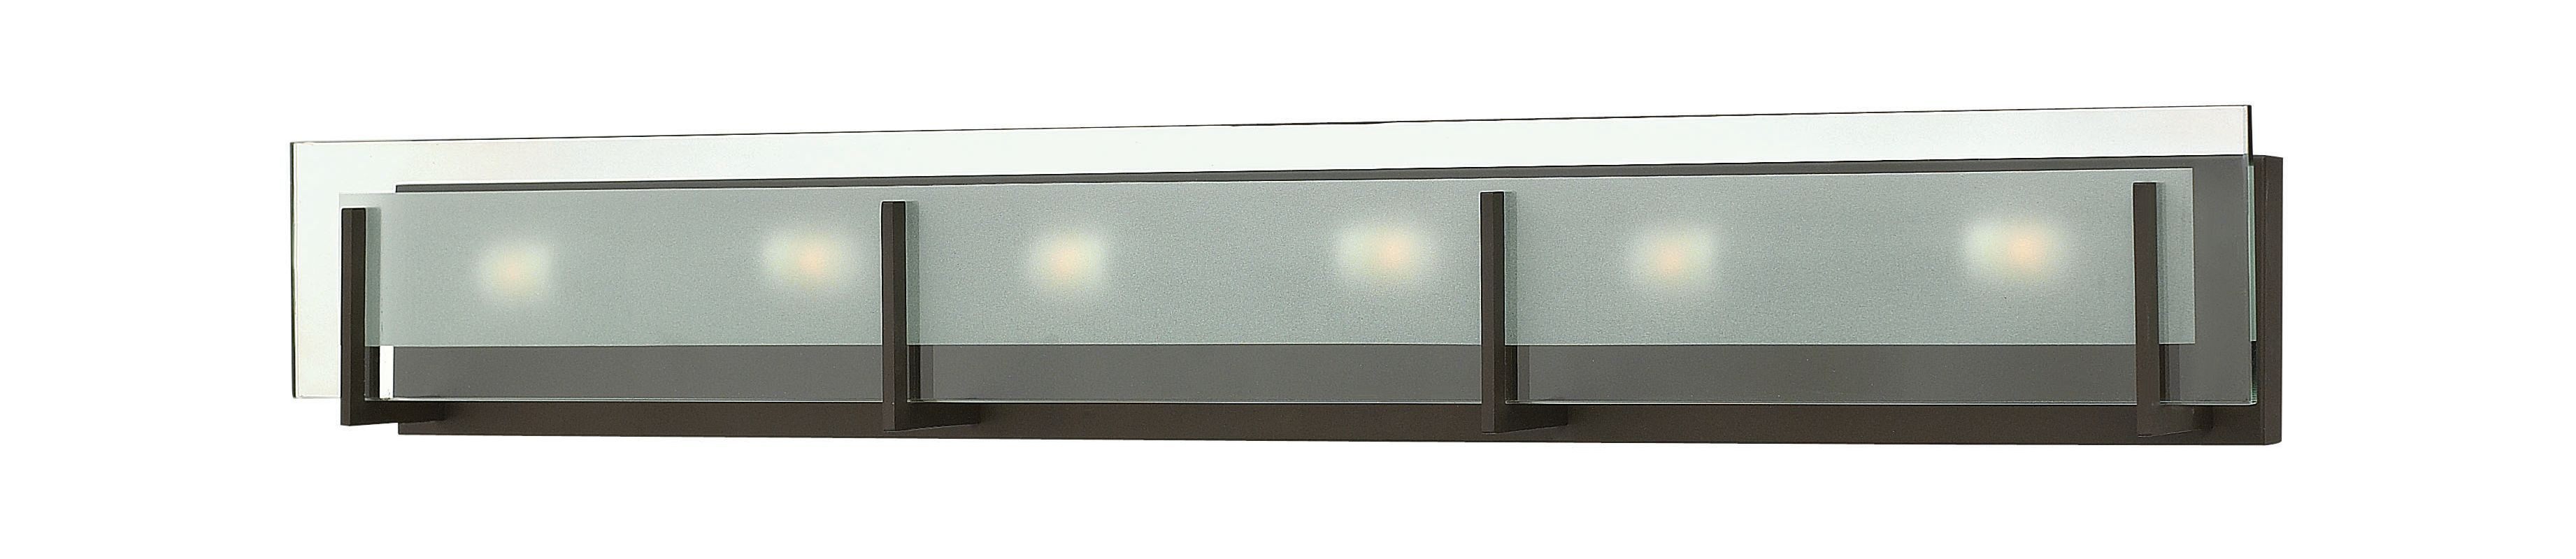 """Hinkley Lighting 5656-LED 6 Light ADA Compliant LED Bath Bar from the Sale $679.00 ITEM#: 2635600 MODEL# :5656OZ-LED UPC#: 640665565676 Six Light ADA Compliant LED Bath Bar from the Latitude Collection Features: Clear Beveled Inside-Etched glass rectangle shade Etched glass shades offer creative patterns and designs Made of steel Designed to cast a soft ambient light over a wide area Can be mounted facing upwards only Energy efficient ADA Compliant Suitable for damp locations Lamping Technology: LED - Light Emitting Diode: Highly efficient diodes produce little heat and have an extremely long lifespan. Specifications: Backplate Height: 4.75"""" Backplate Width: 36.25"""" Bulb Included: Yes Bulb Type: LED Extension: 4"""" (measured from mounting surface to furthest protruding point on fixture) Full Backplate: Yes HCO: 3.25"""" (height from center of outlet) Height: 5.75"""" LED: Yes Material: Steel Number of Bulbs: 6 Product Weight: 14 lbs Shade Height: 4.75"""" Shade Width: 18"""" Sloped Ceiling Compatible: No Title 24: No UL Rating: Damp Location Voltage: 120v Wattage: 39.6 Watts Per Bulb: 6.6 Compliance: UL Listed - Indicates whether a product meets standards and compliance guidelines set by Underwriters Laboratories. This listing determines what types of rooms or environments a product can be used in safely. ADA Compliance - The Americans with Disabilities Act (ADA). Fixtures hung between 27"""" and 80"""" above the floor must have an extension of 4"""" or less; this applies to wall lights hung in walkways, halls, corridors, passageways or aisles. Ceiling Fixtures must be hung no lower than 80"""". About Hinkley Lighting: Since 1922, Hinkley Lighting has been driven by a passion to blend design and function in creating quality products that enhance your life. Hinkley is continually recommended by interior and exterior designers, and is available to you through premier lighting showrooms across the country. They pride themselves in delivering superior customer service that is second to none. They"""